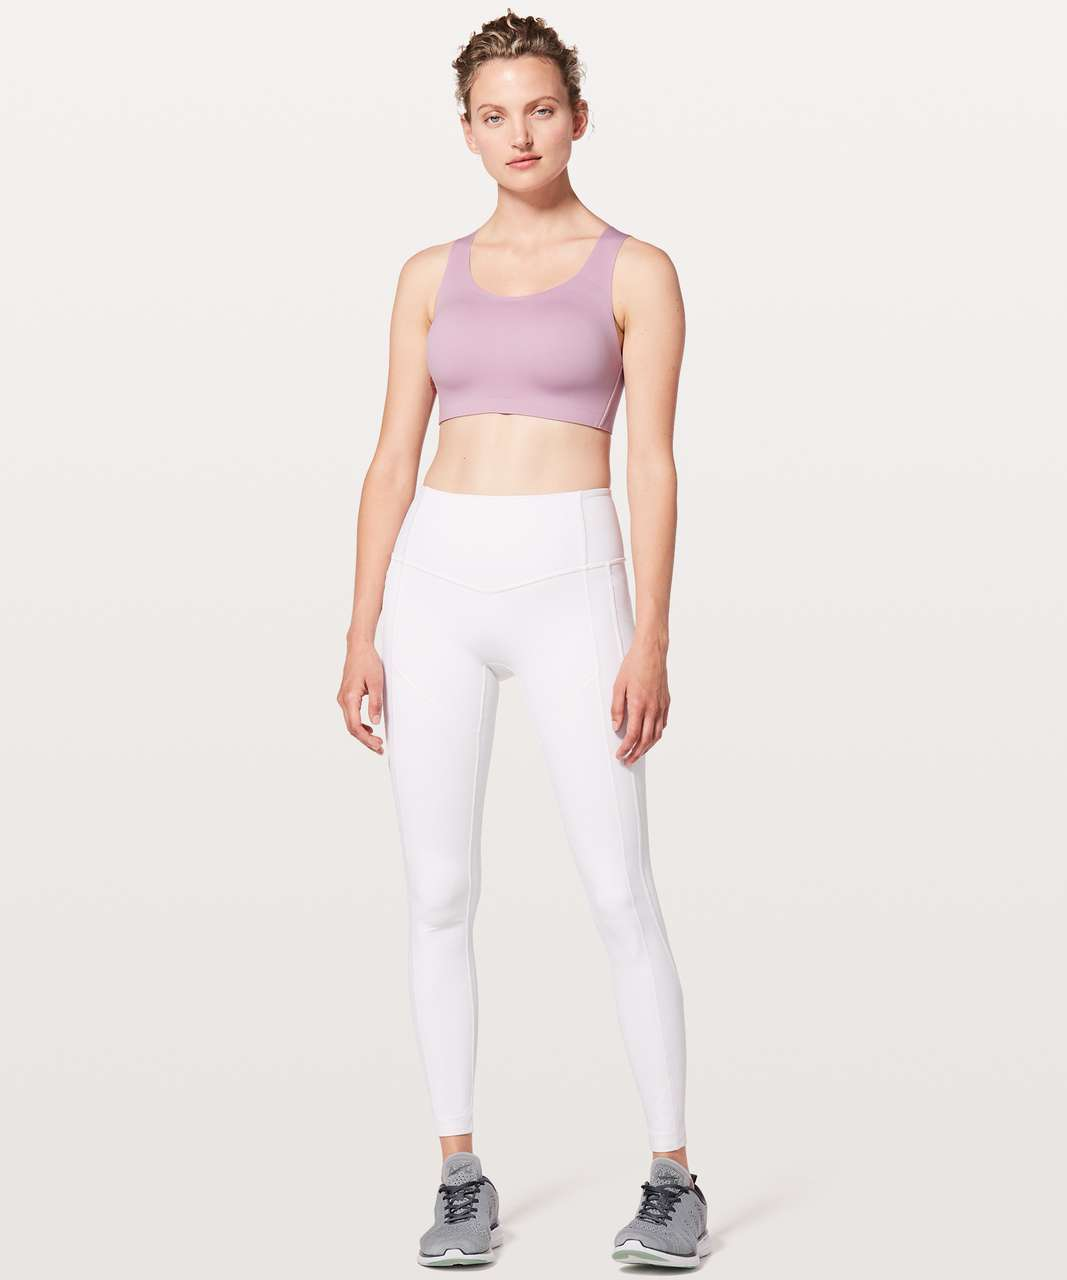 Lululemon Enlite Bra - Rose Blush